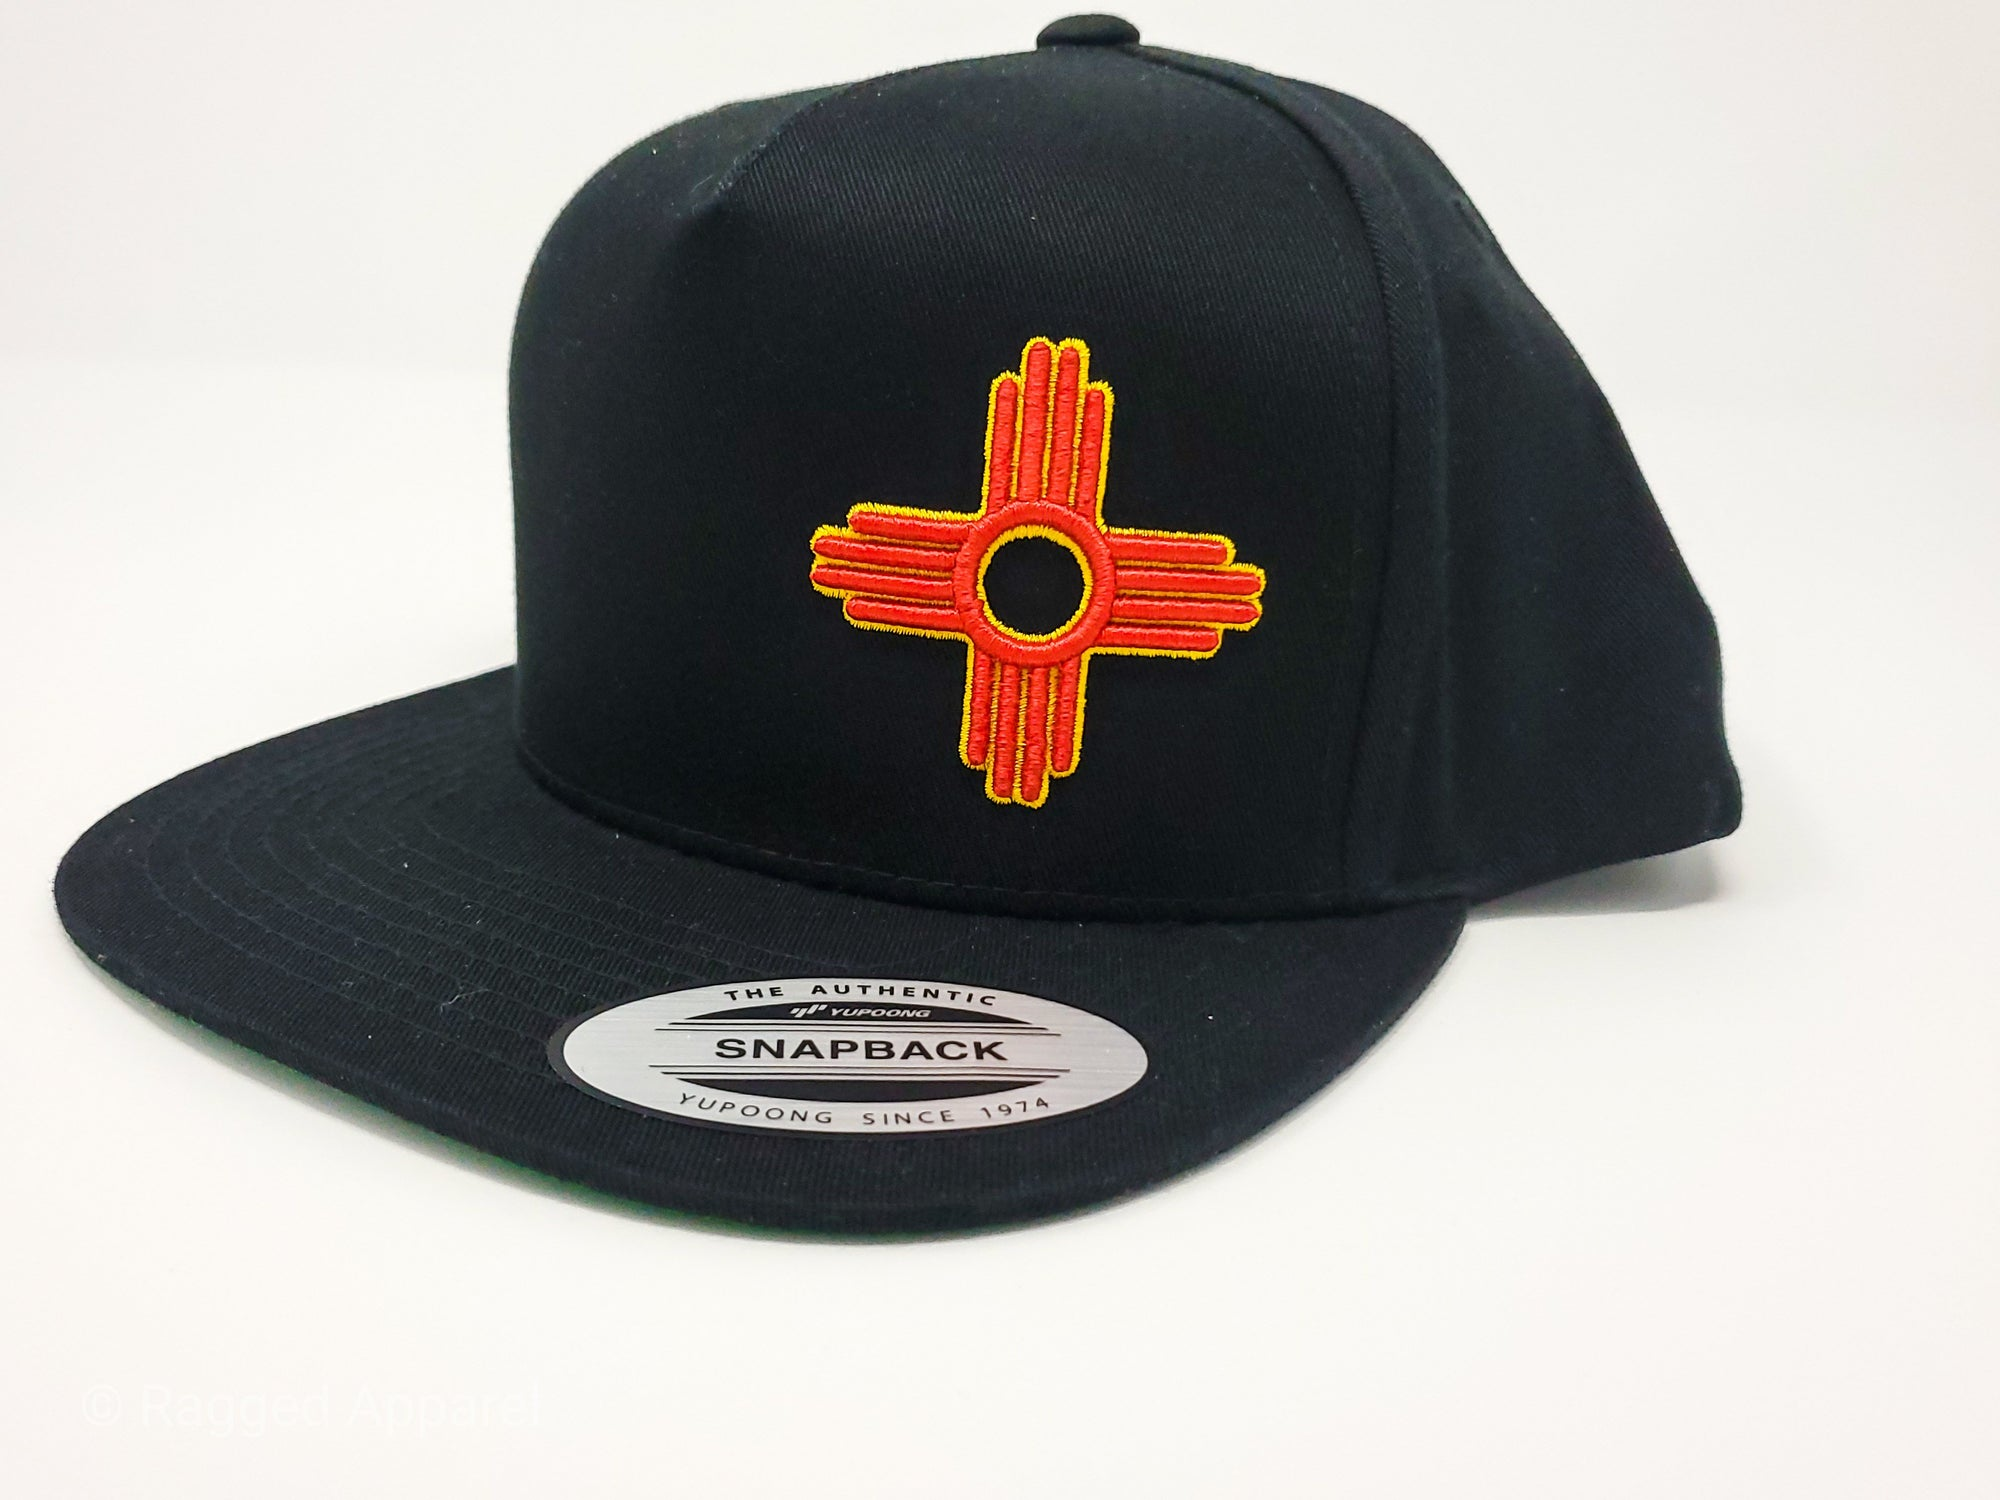 Zia Embroidered Flat Bill Snapback - Ragged Apparel Screen Printing and Signs - www.nmshirts.com